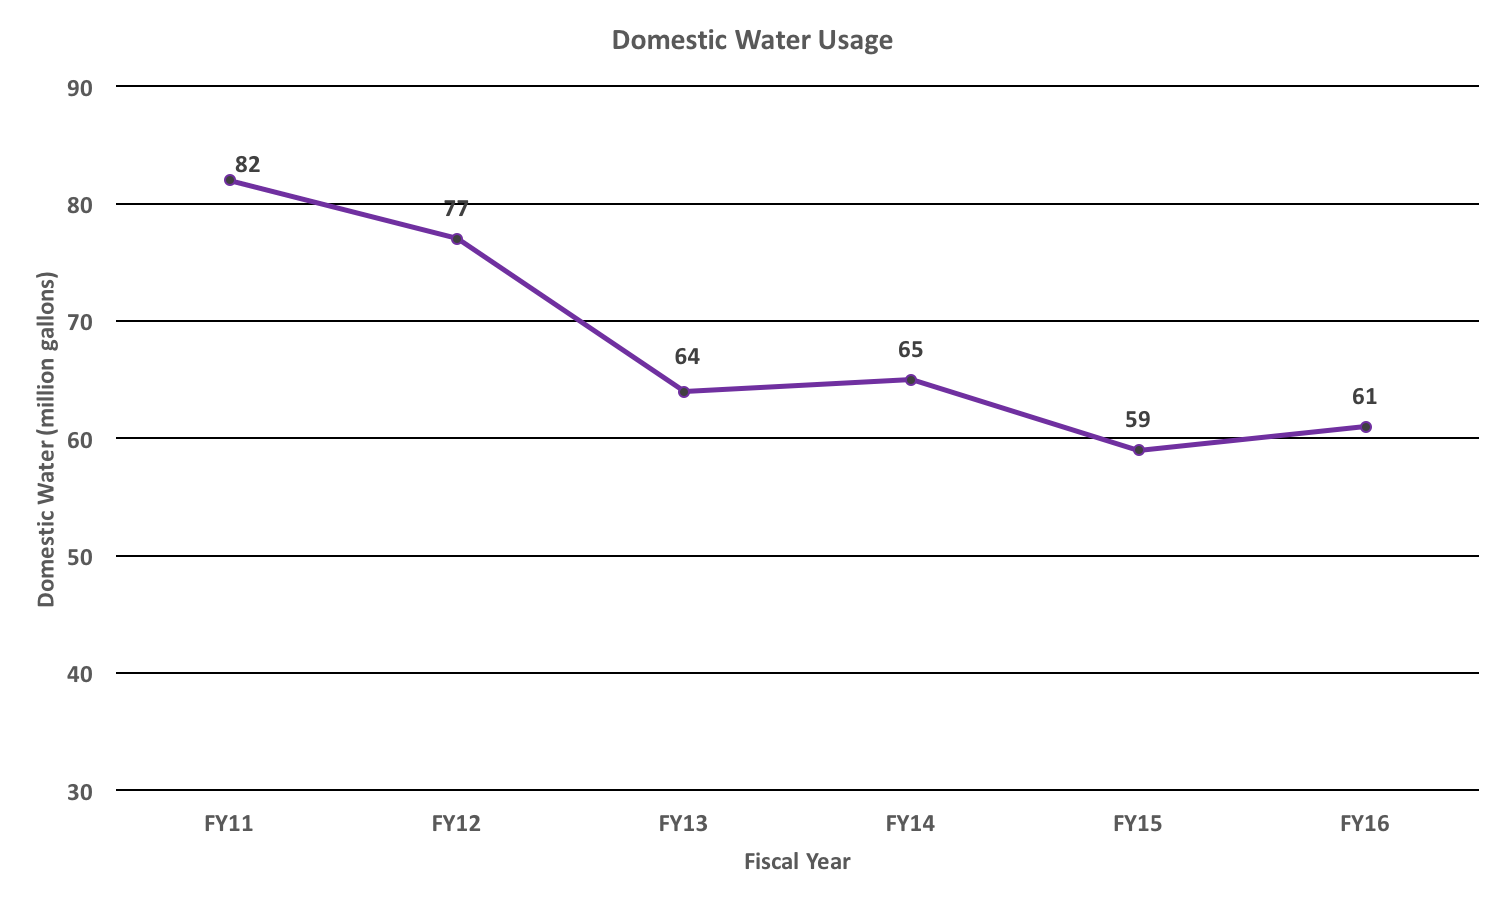 Domestic Water Usage